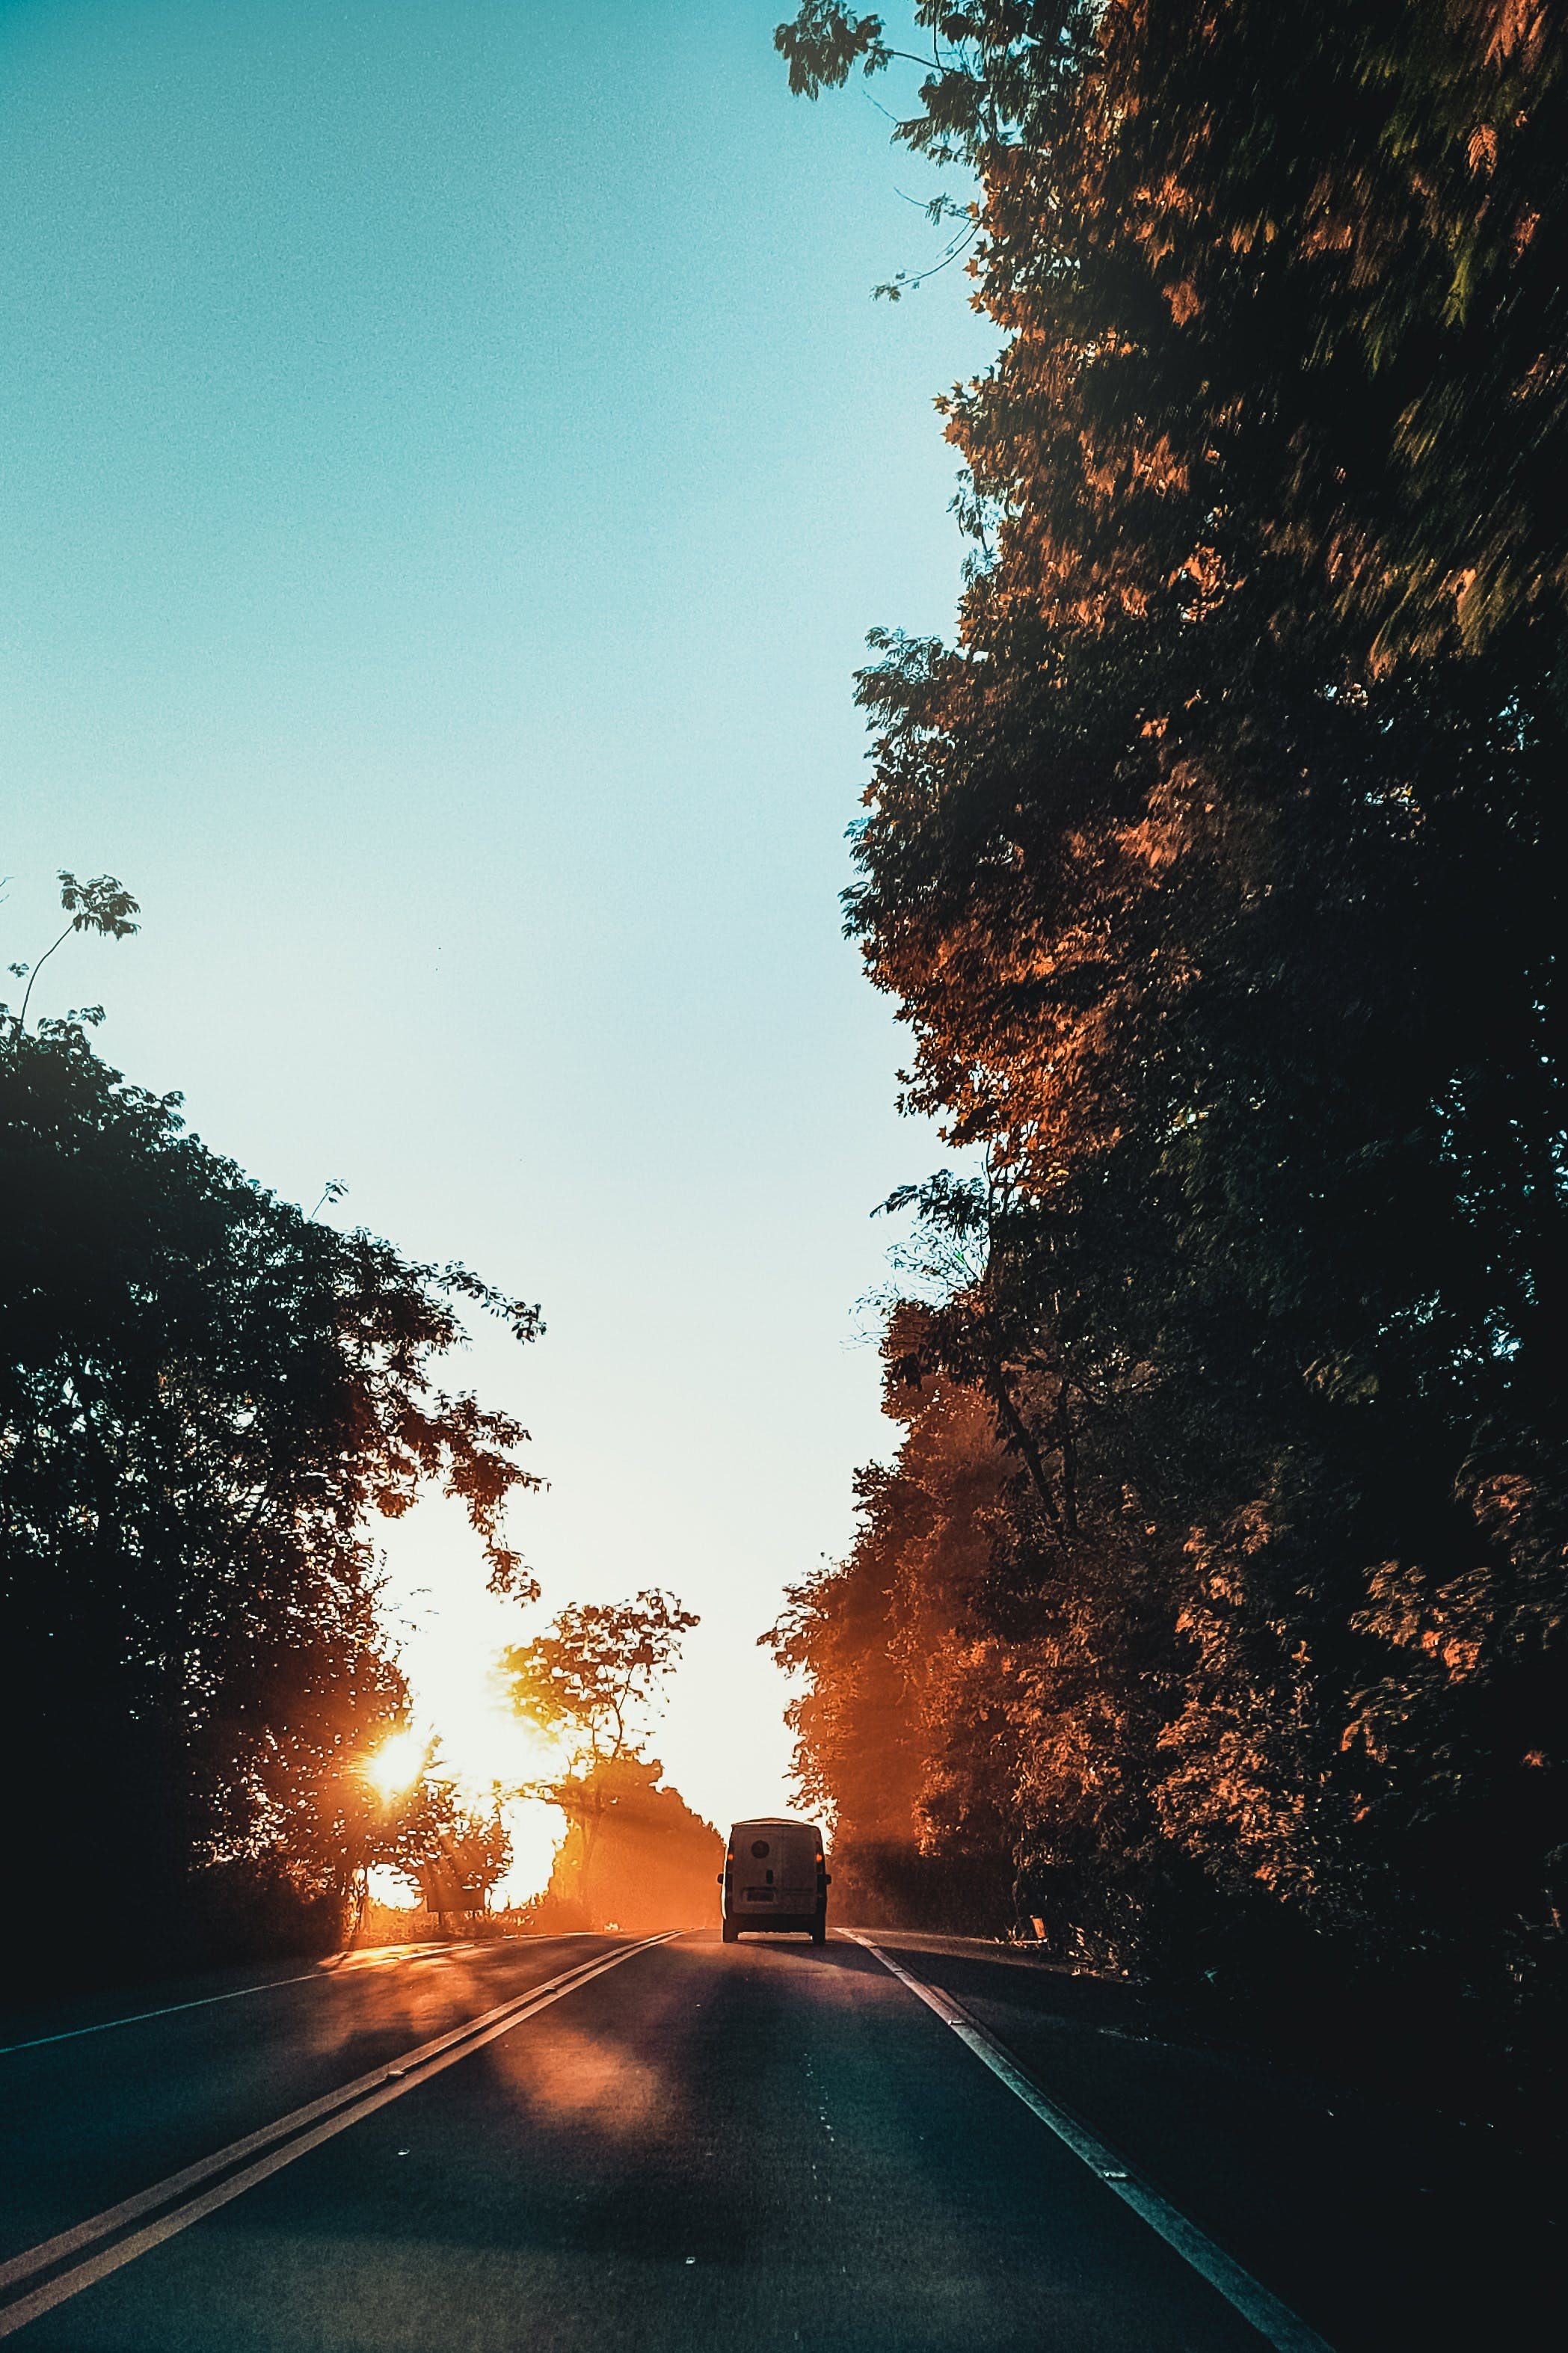 Vehicle On Road During Golden Hour